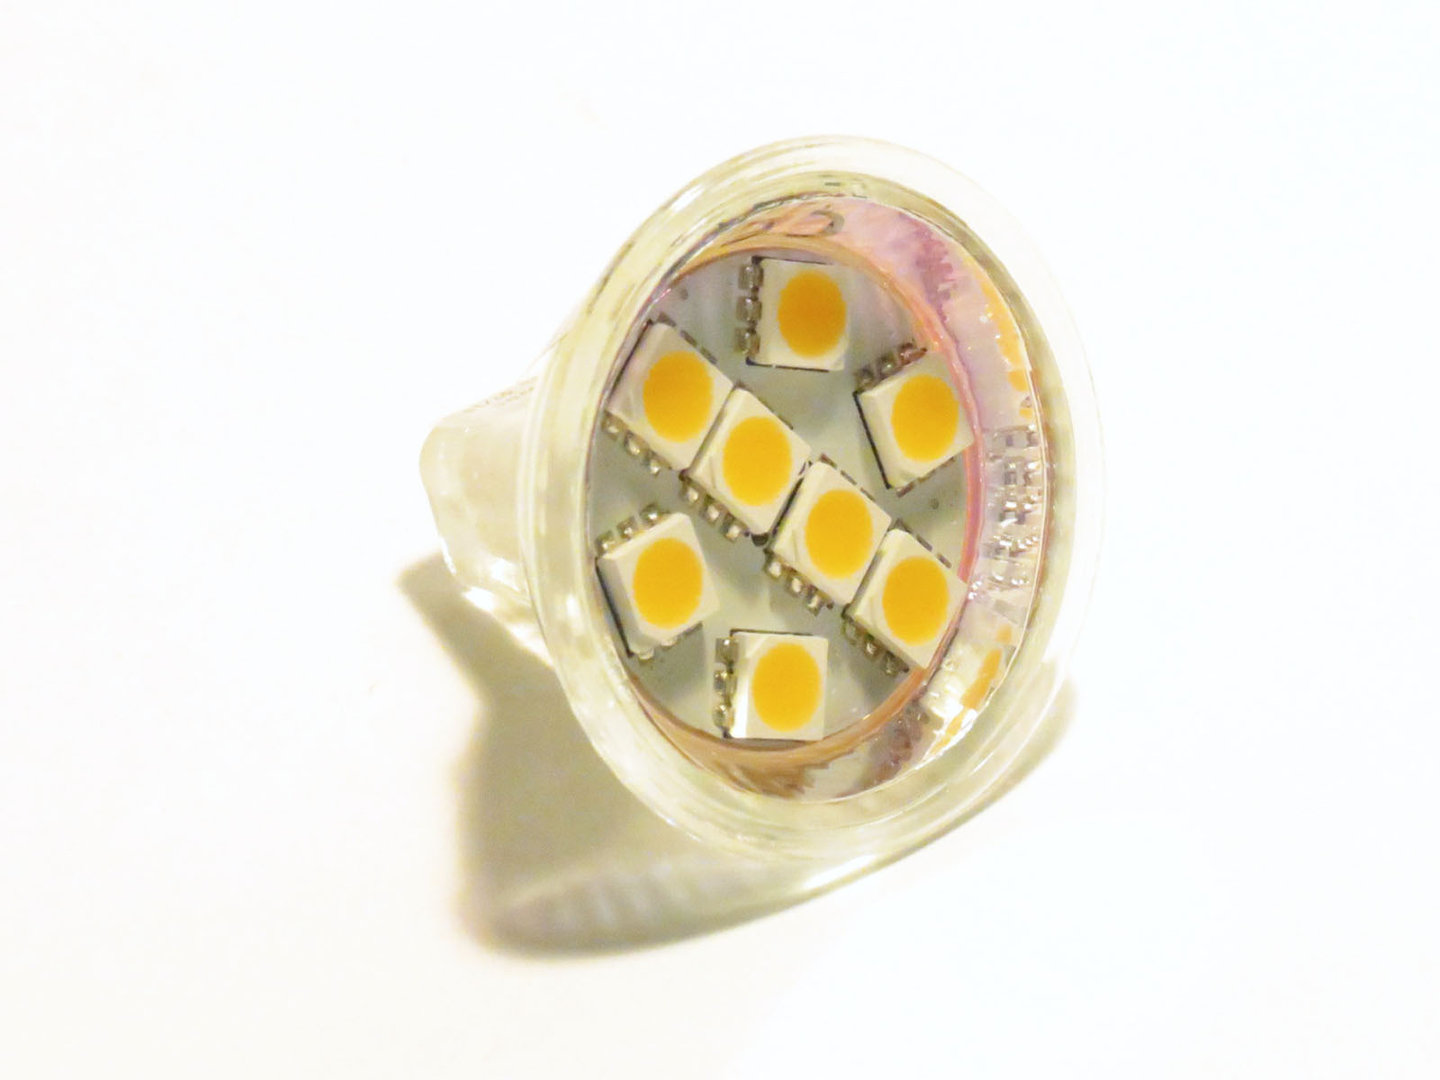 MR11 8 LED SMD 5mm 10-30V warmweiß